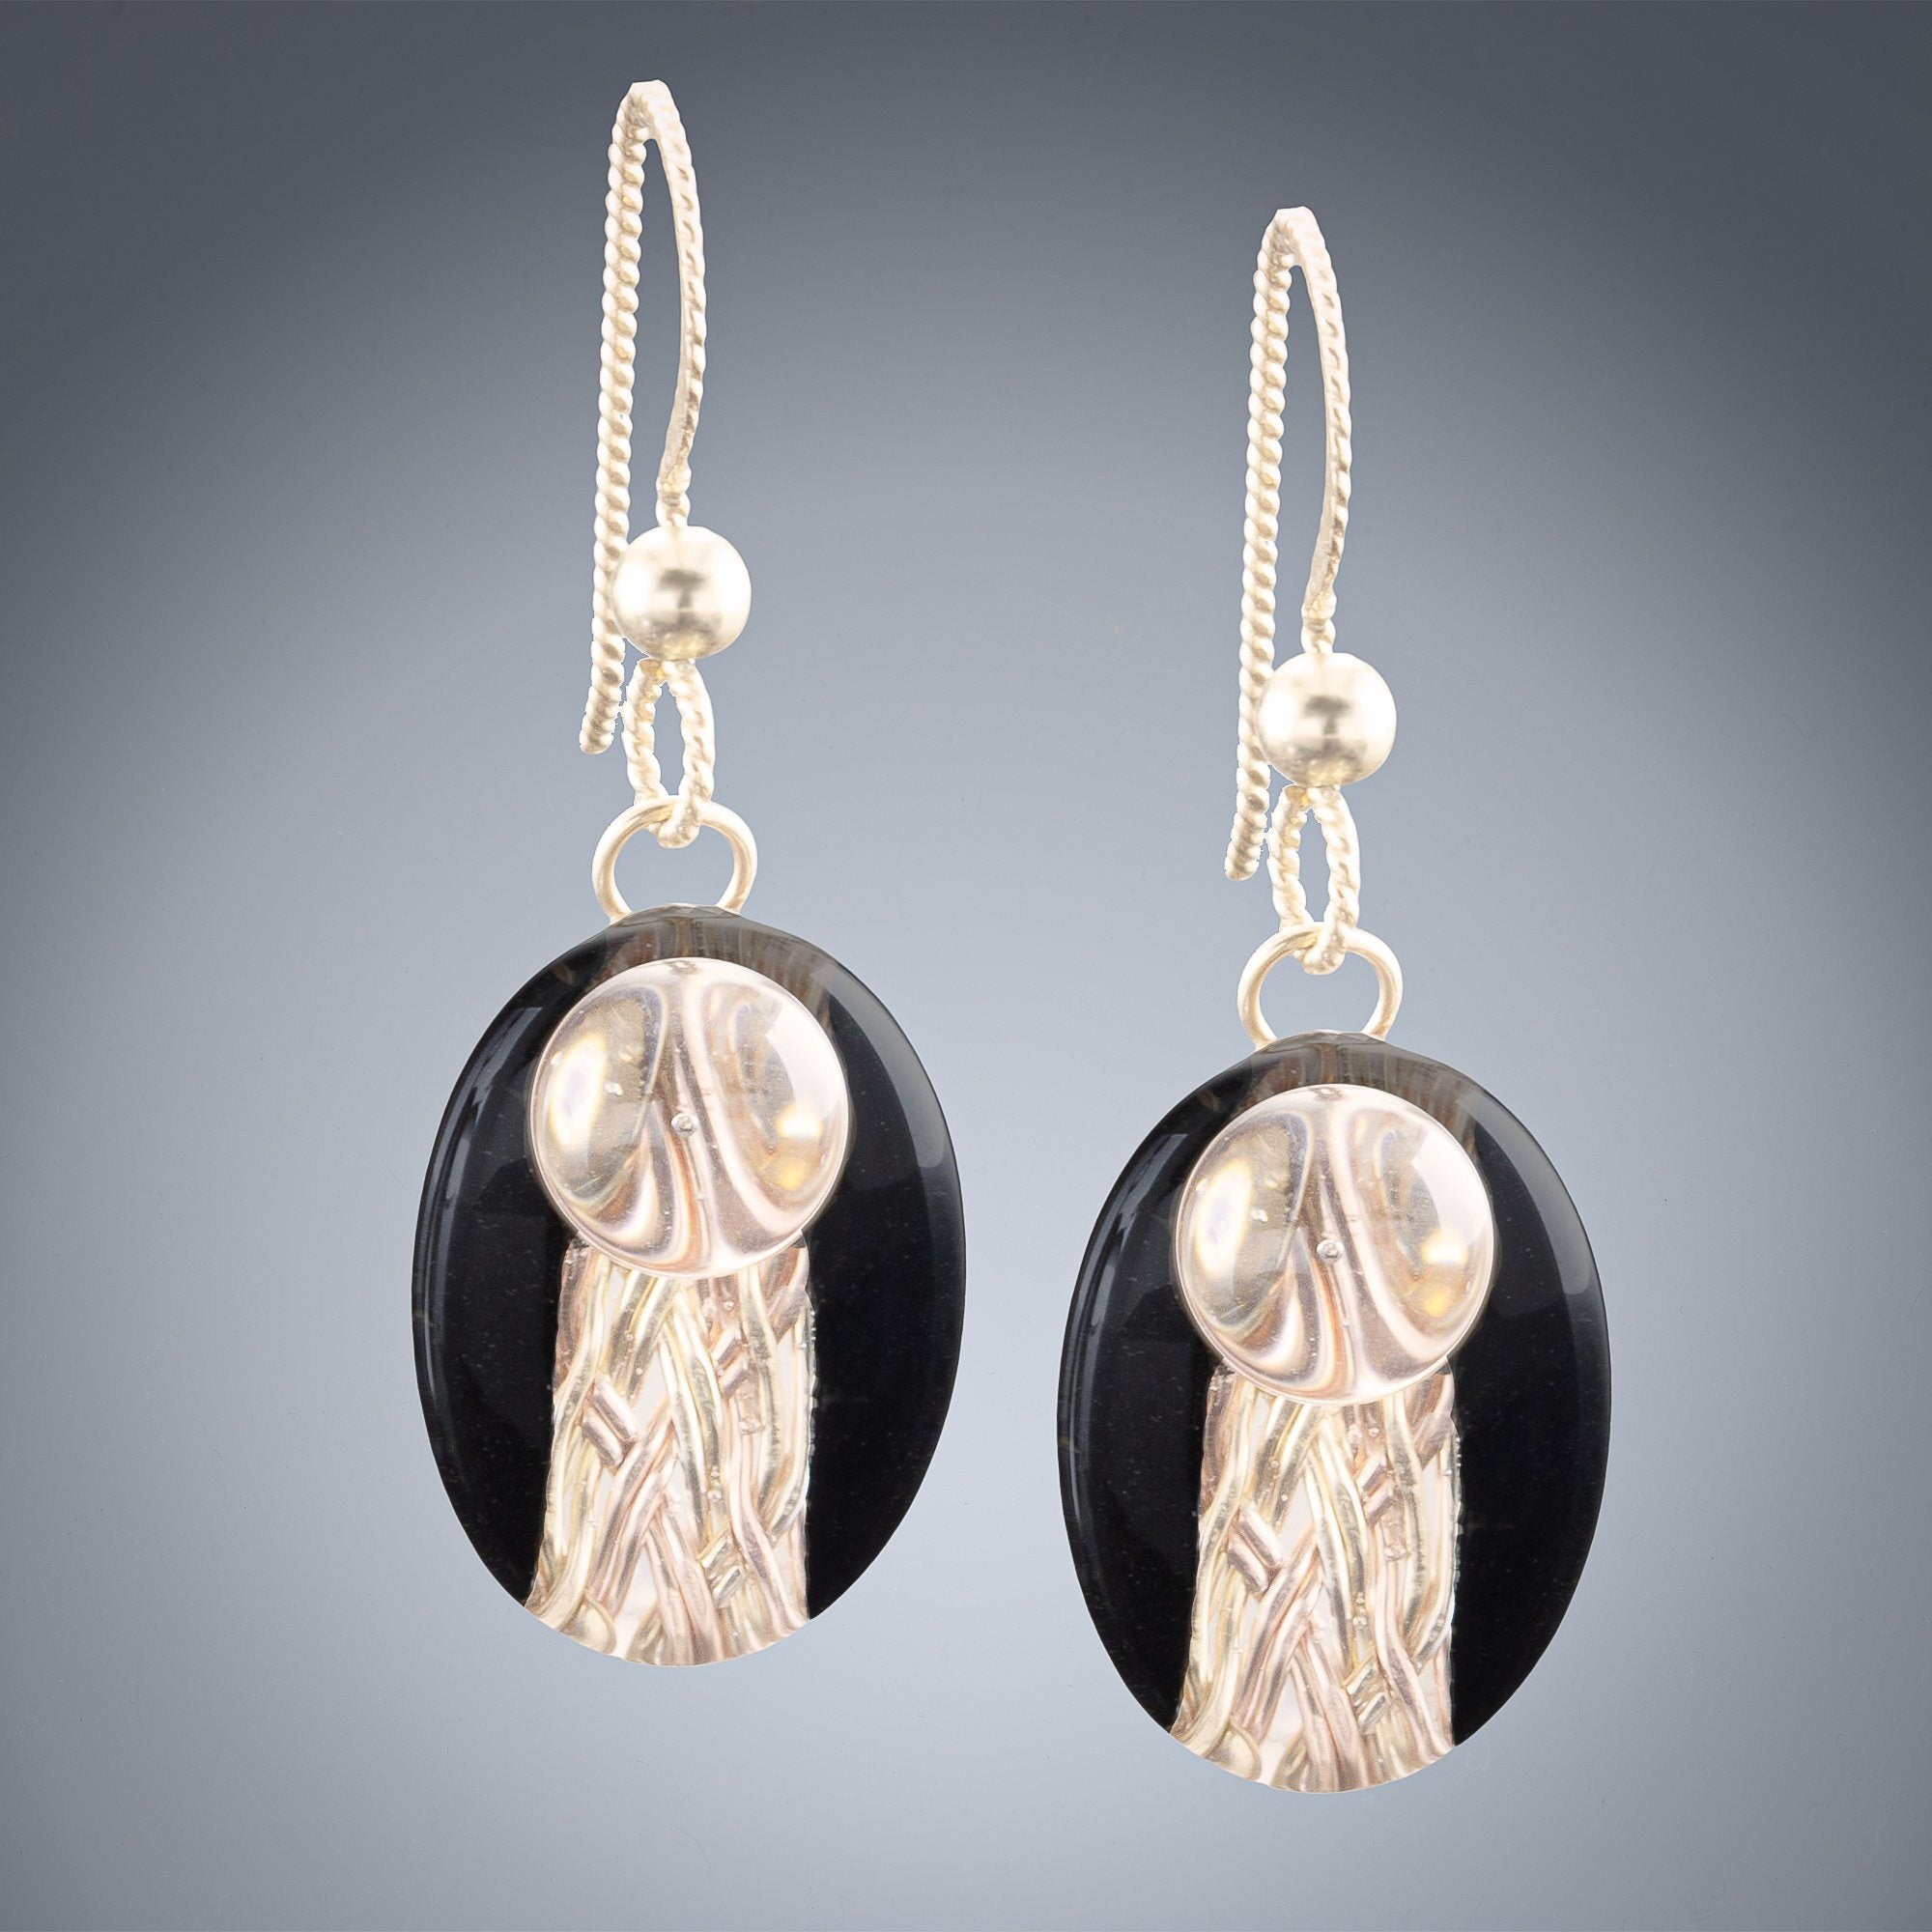 Handwoven Oval Black and Gold Art Deco Inspired Earrings in both 14K Yellow and Rose Gold Fill